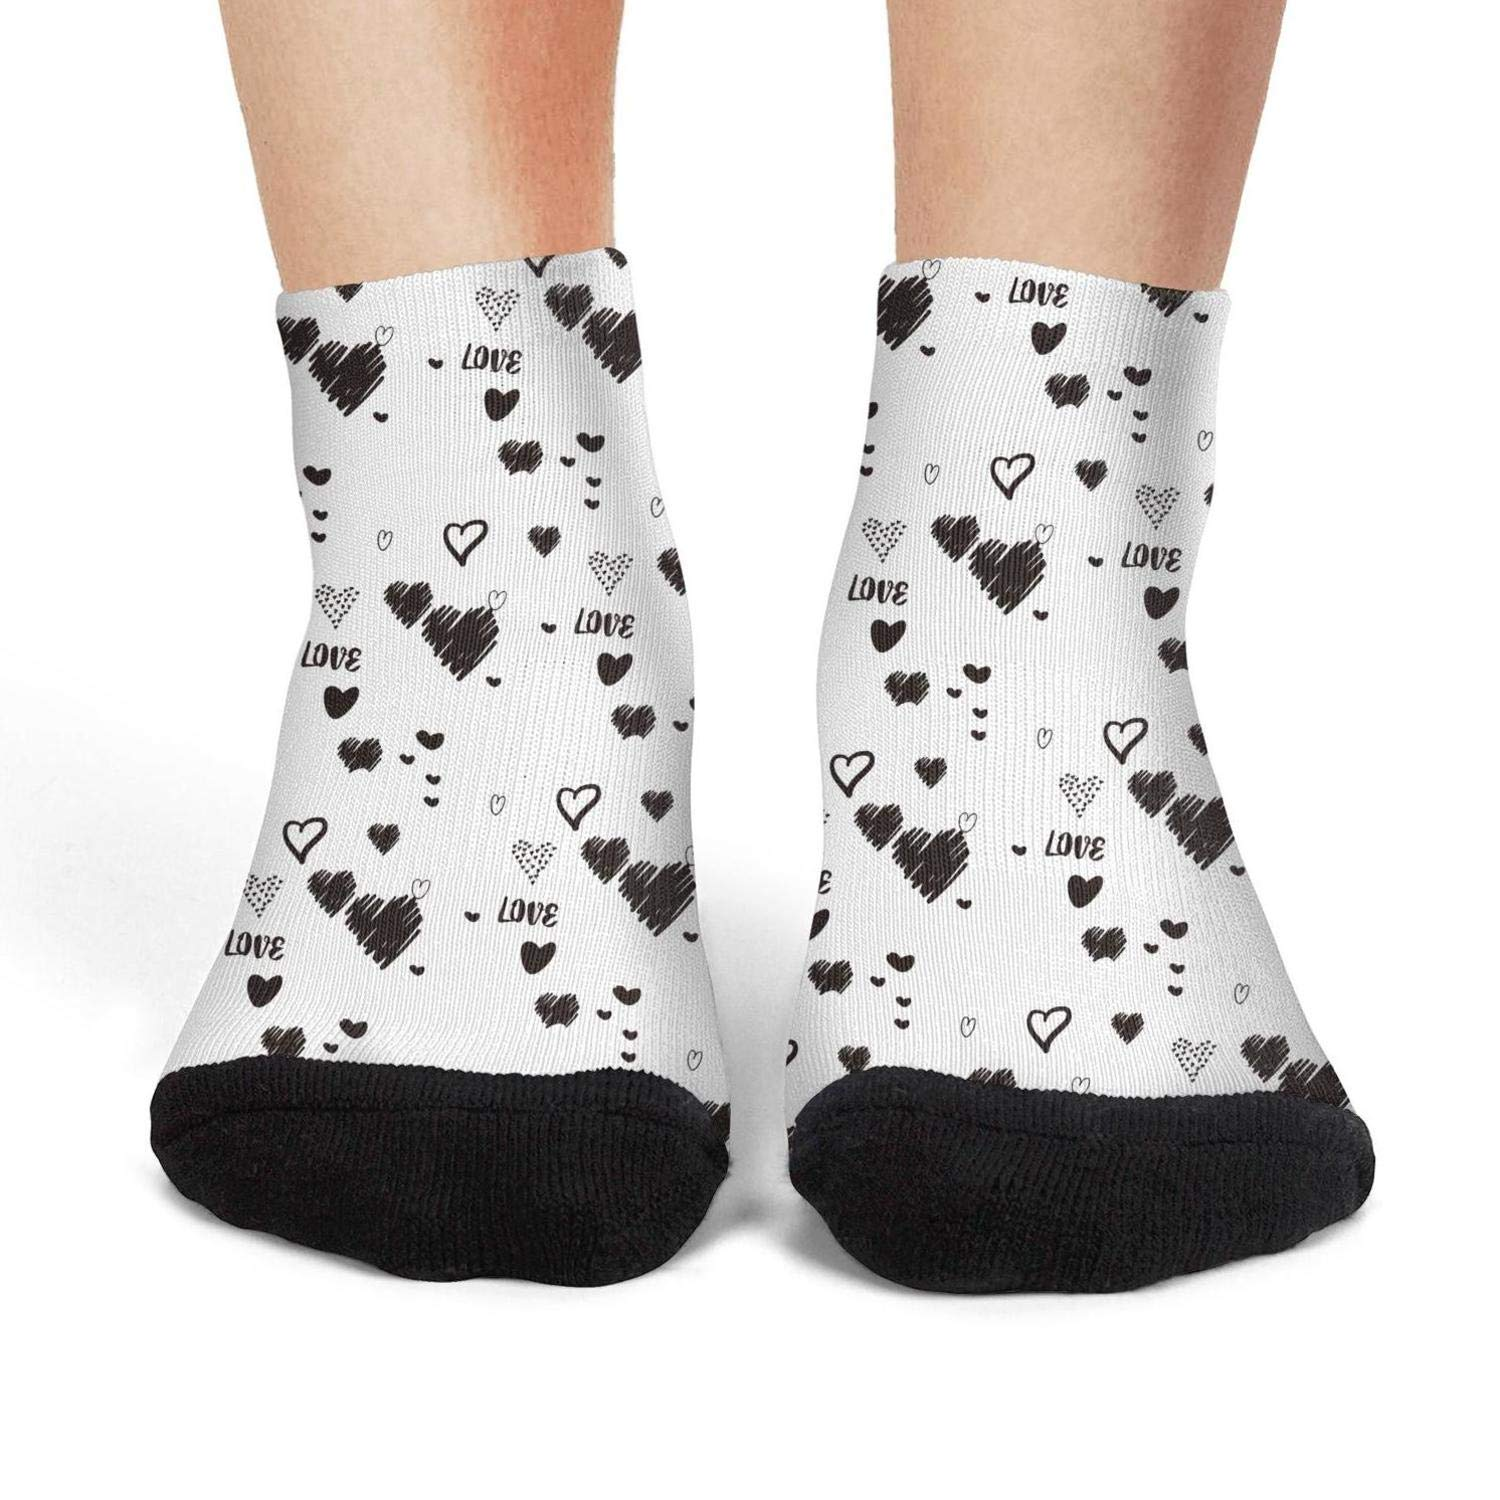 Ethnic style Vintage Cushioned No ShowRunning Non-Slid Ankle Socks for womens